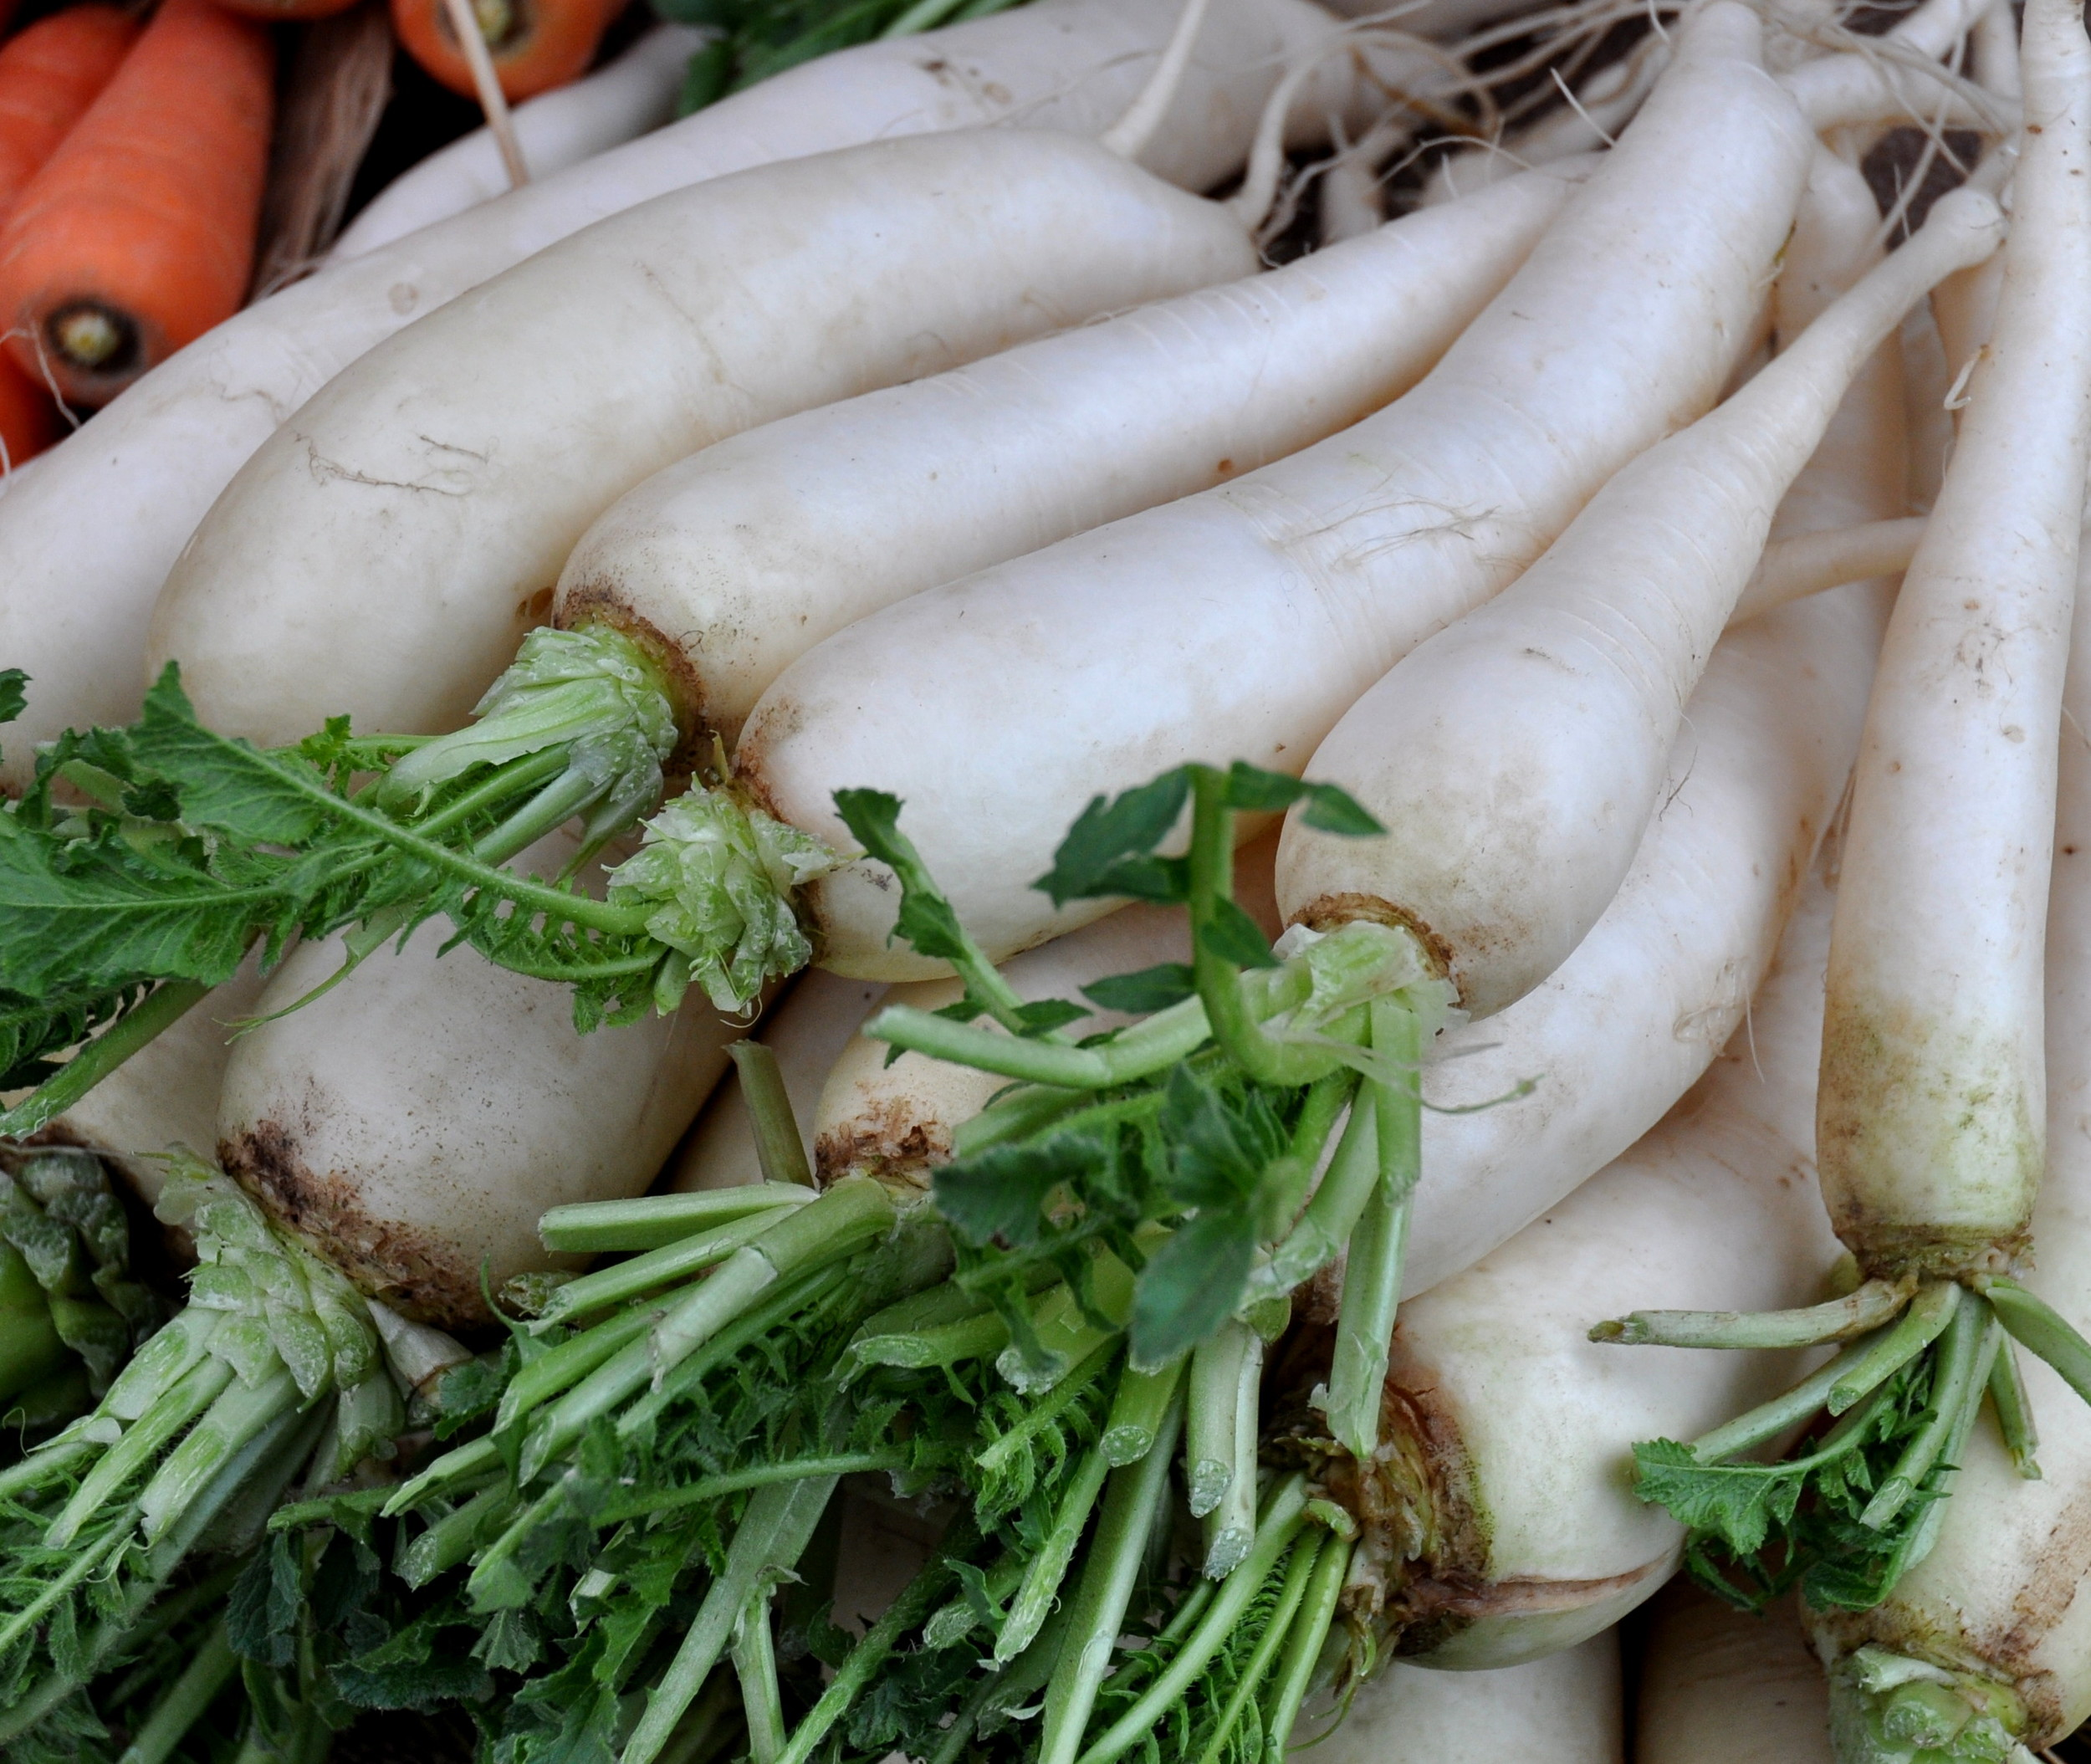 Daikon radishes from One Leaf Farm. Photo copyright 2012 by Zachary D. Lyons.